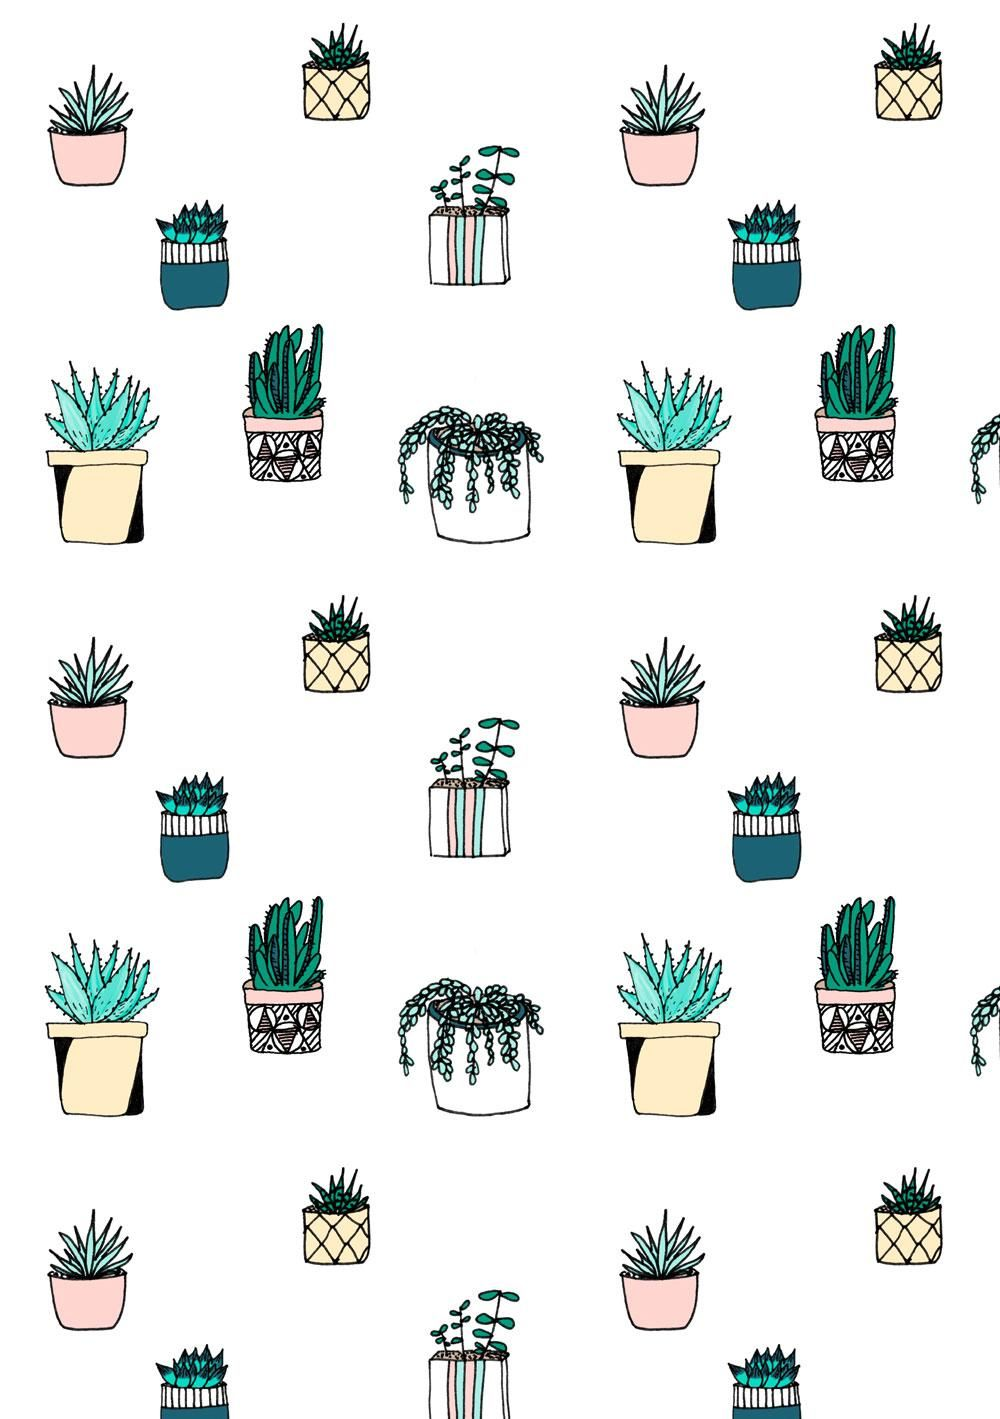 Cactus pattern - image 2 - student project